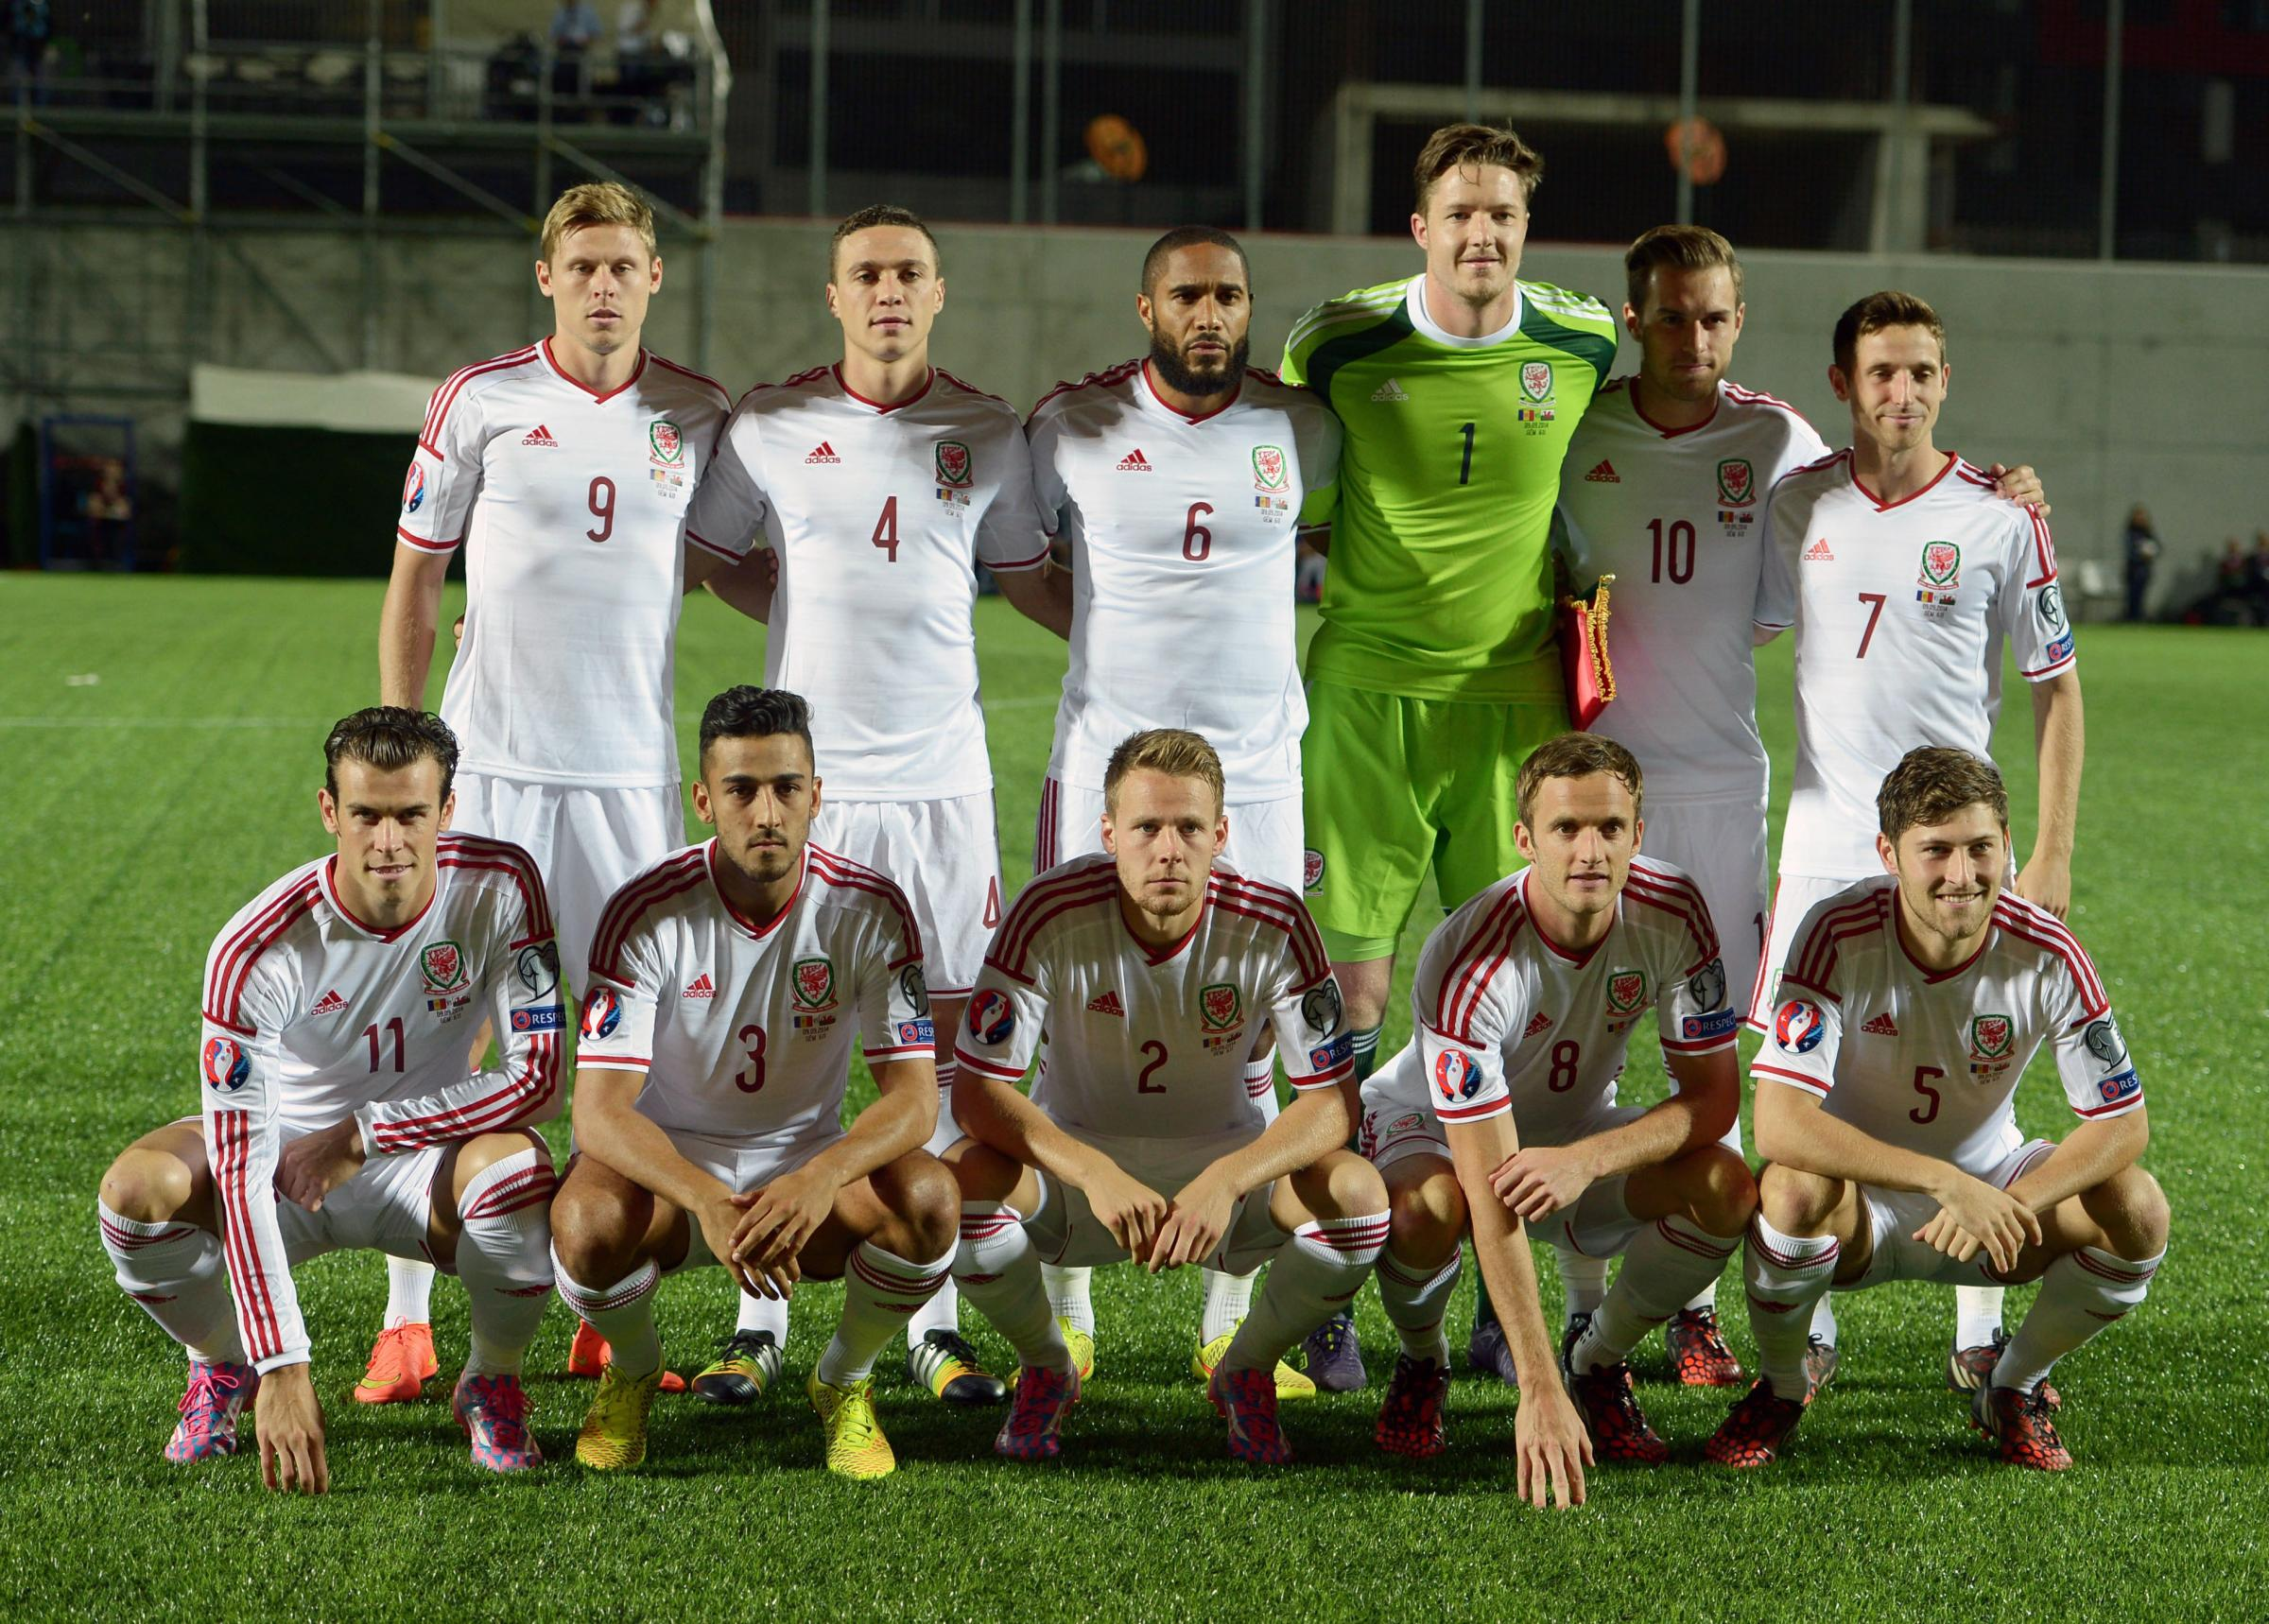 Wales-14-15-adidas-away-kit-white-white-white-line-up.jpg